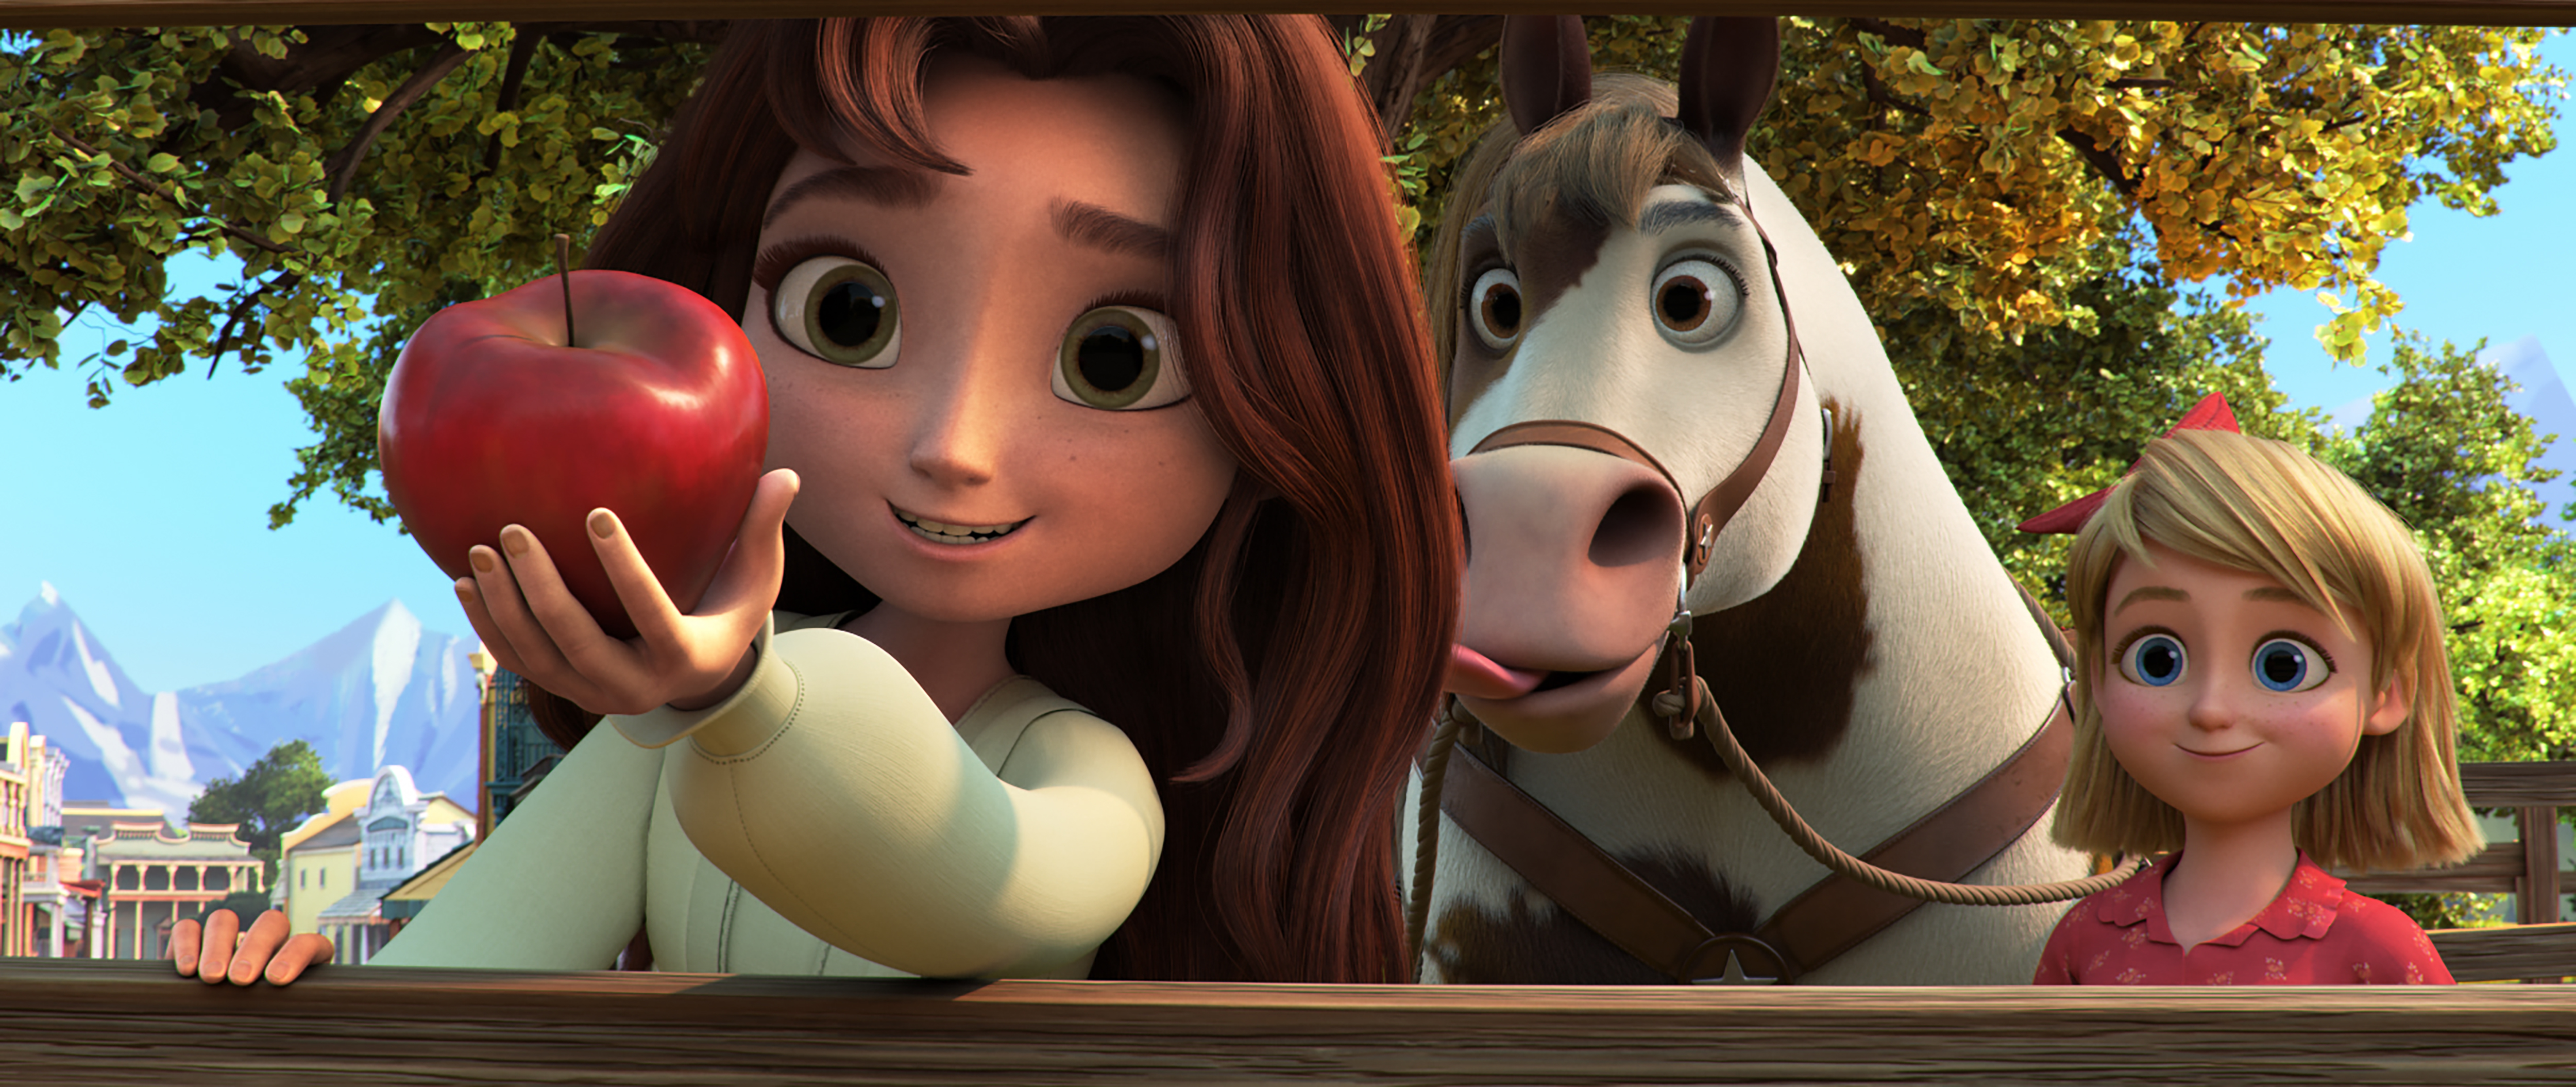 composing-the-empowering-theme-of-dreamworks'-animated-feature-'spirit-untamed'